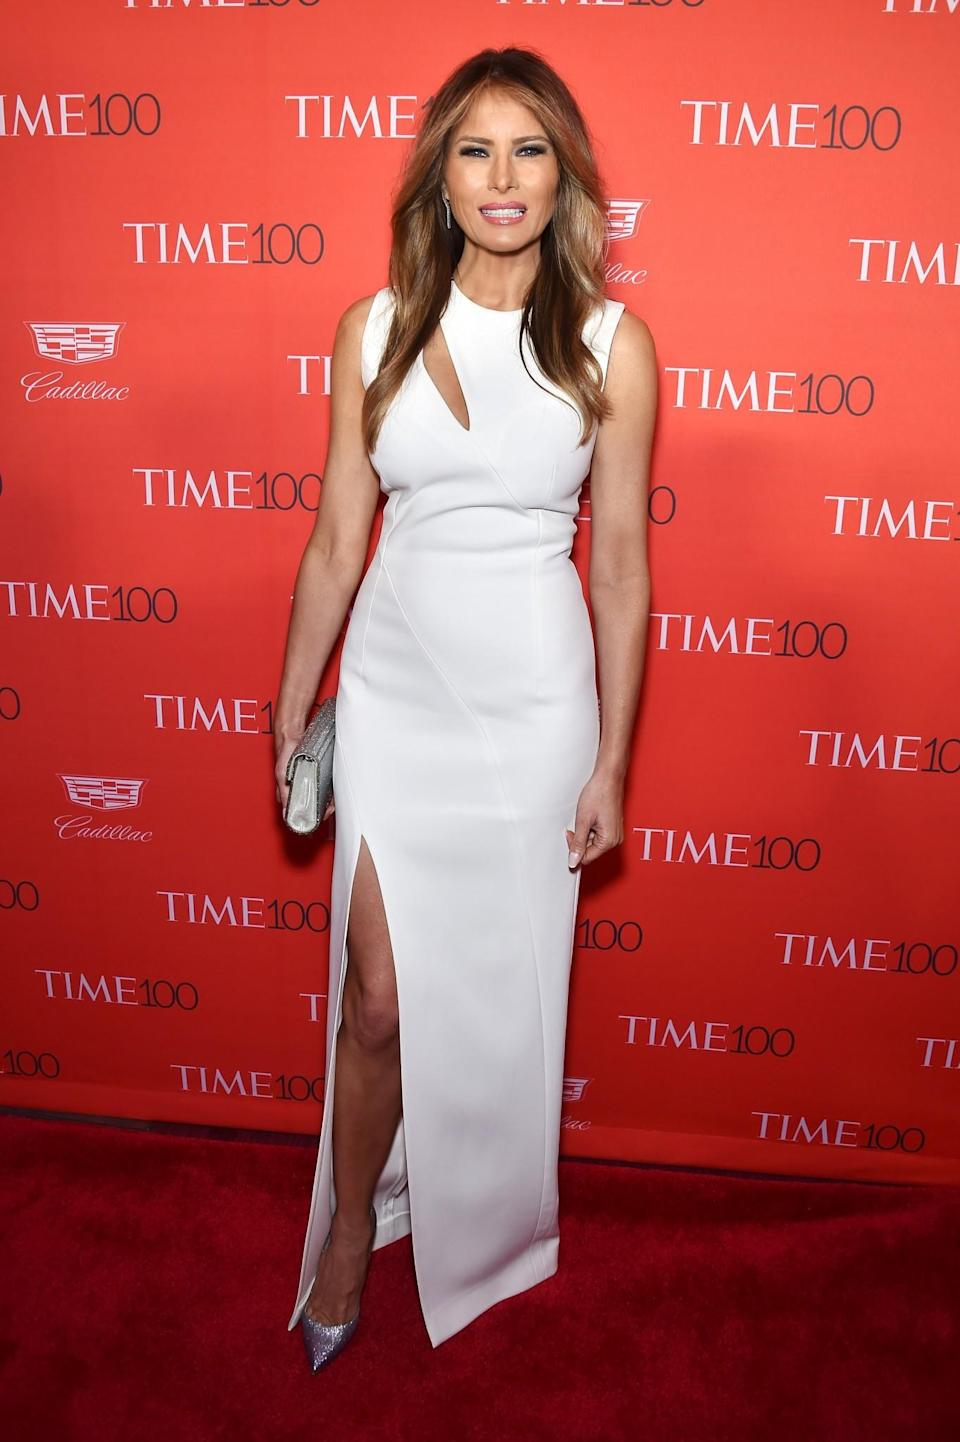 <p>Melania showed how it's done at the Time 100 Gala in a showstopping white gown with a thigh-high slit and cut-out detailing. Sparkly silver stilettos finished the look. <i>[Photo: Getty]</i> </p>